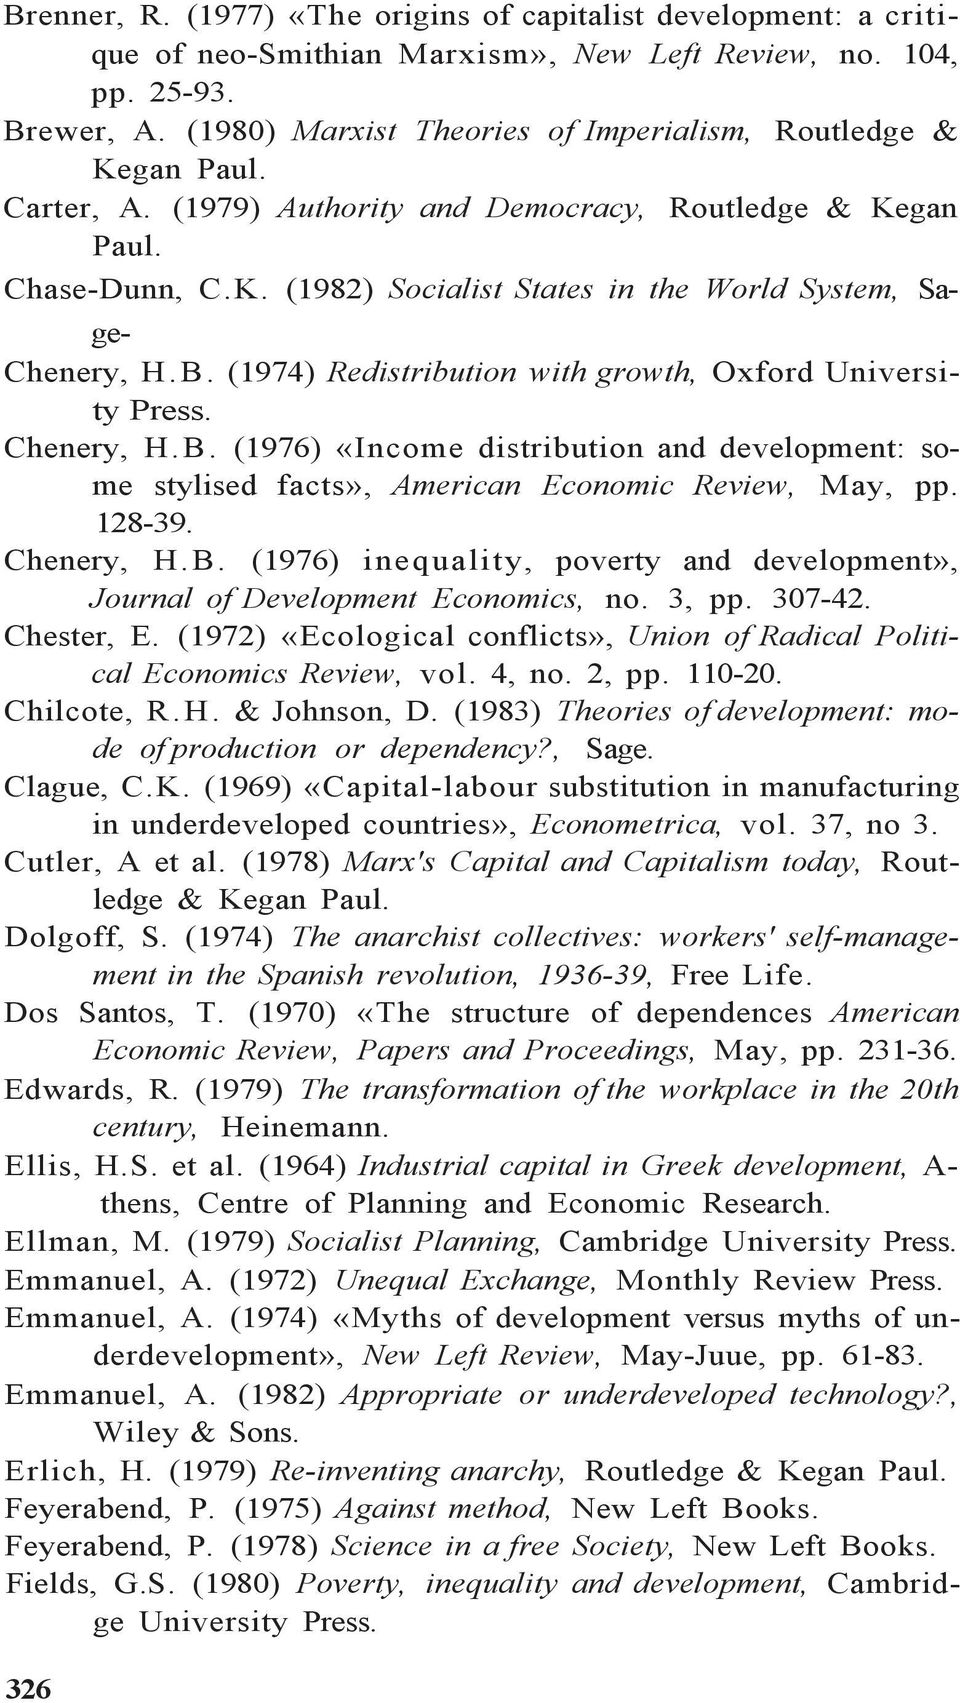 B. (1974) Redistribution with growth, Oxford University Chenery, H. B. (1976) «Income distribution and development: some stylised facts», American Economic Review, May, pp. 128-39. Chenery, H.B. (1976) inequality, poverty and development», Journal of Development Economics, no.